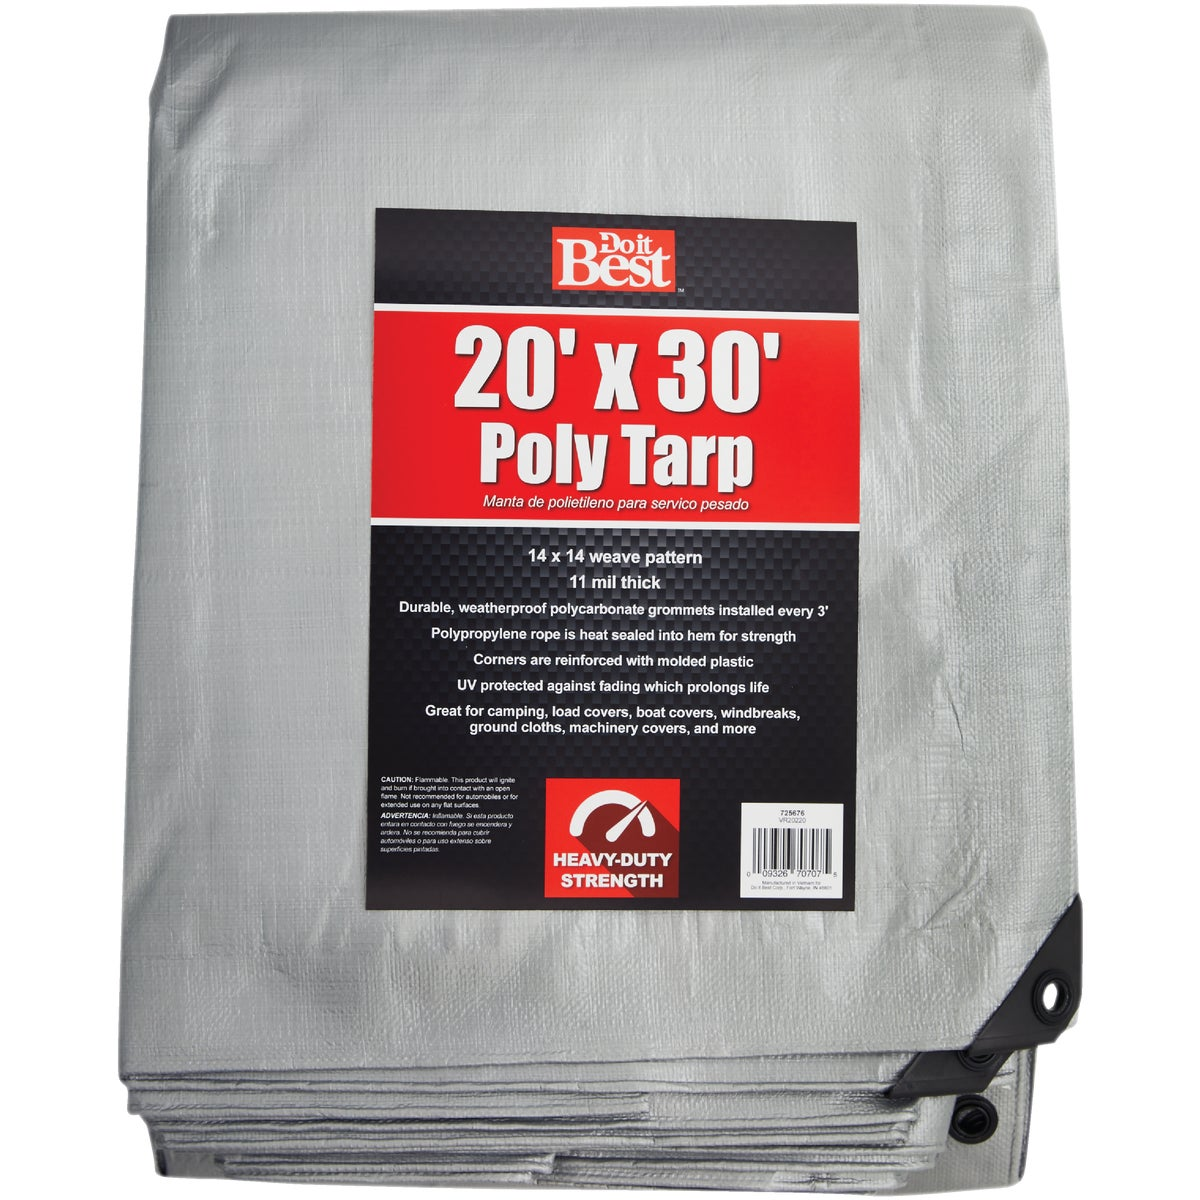 20X30 SLVR H/DUTY TARP - 725676 by Do it Best